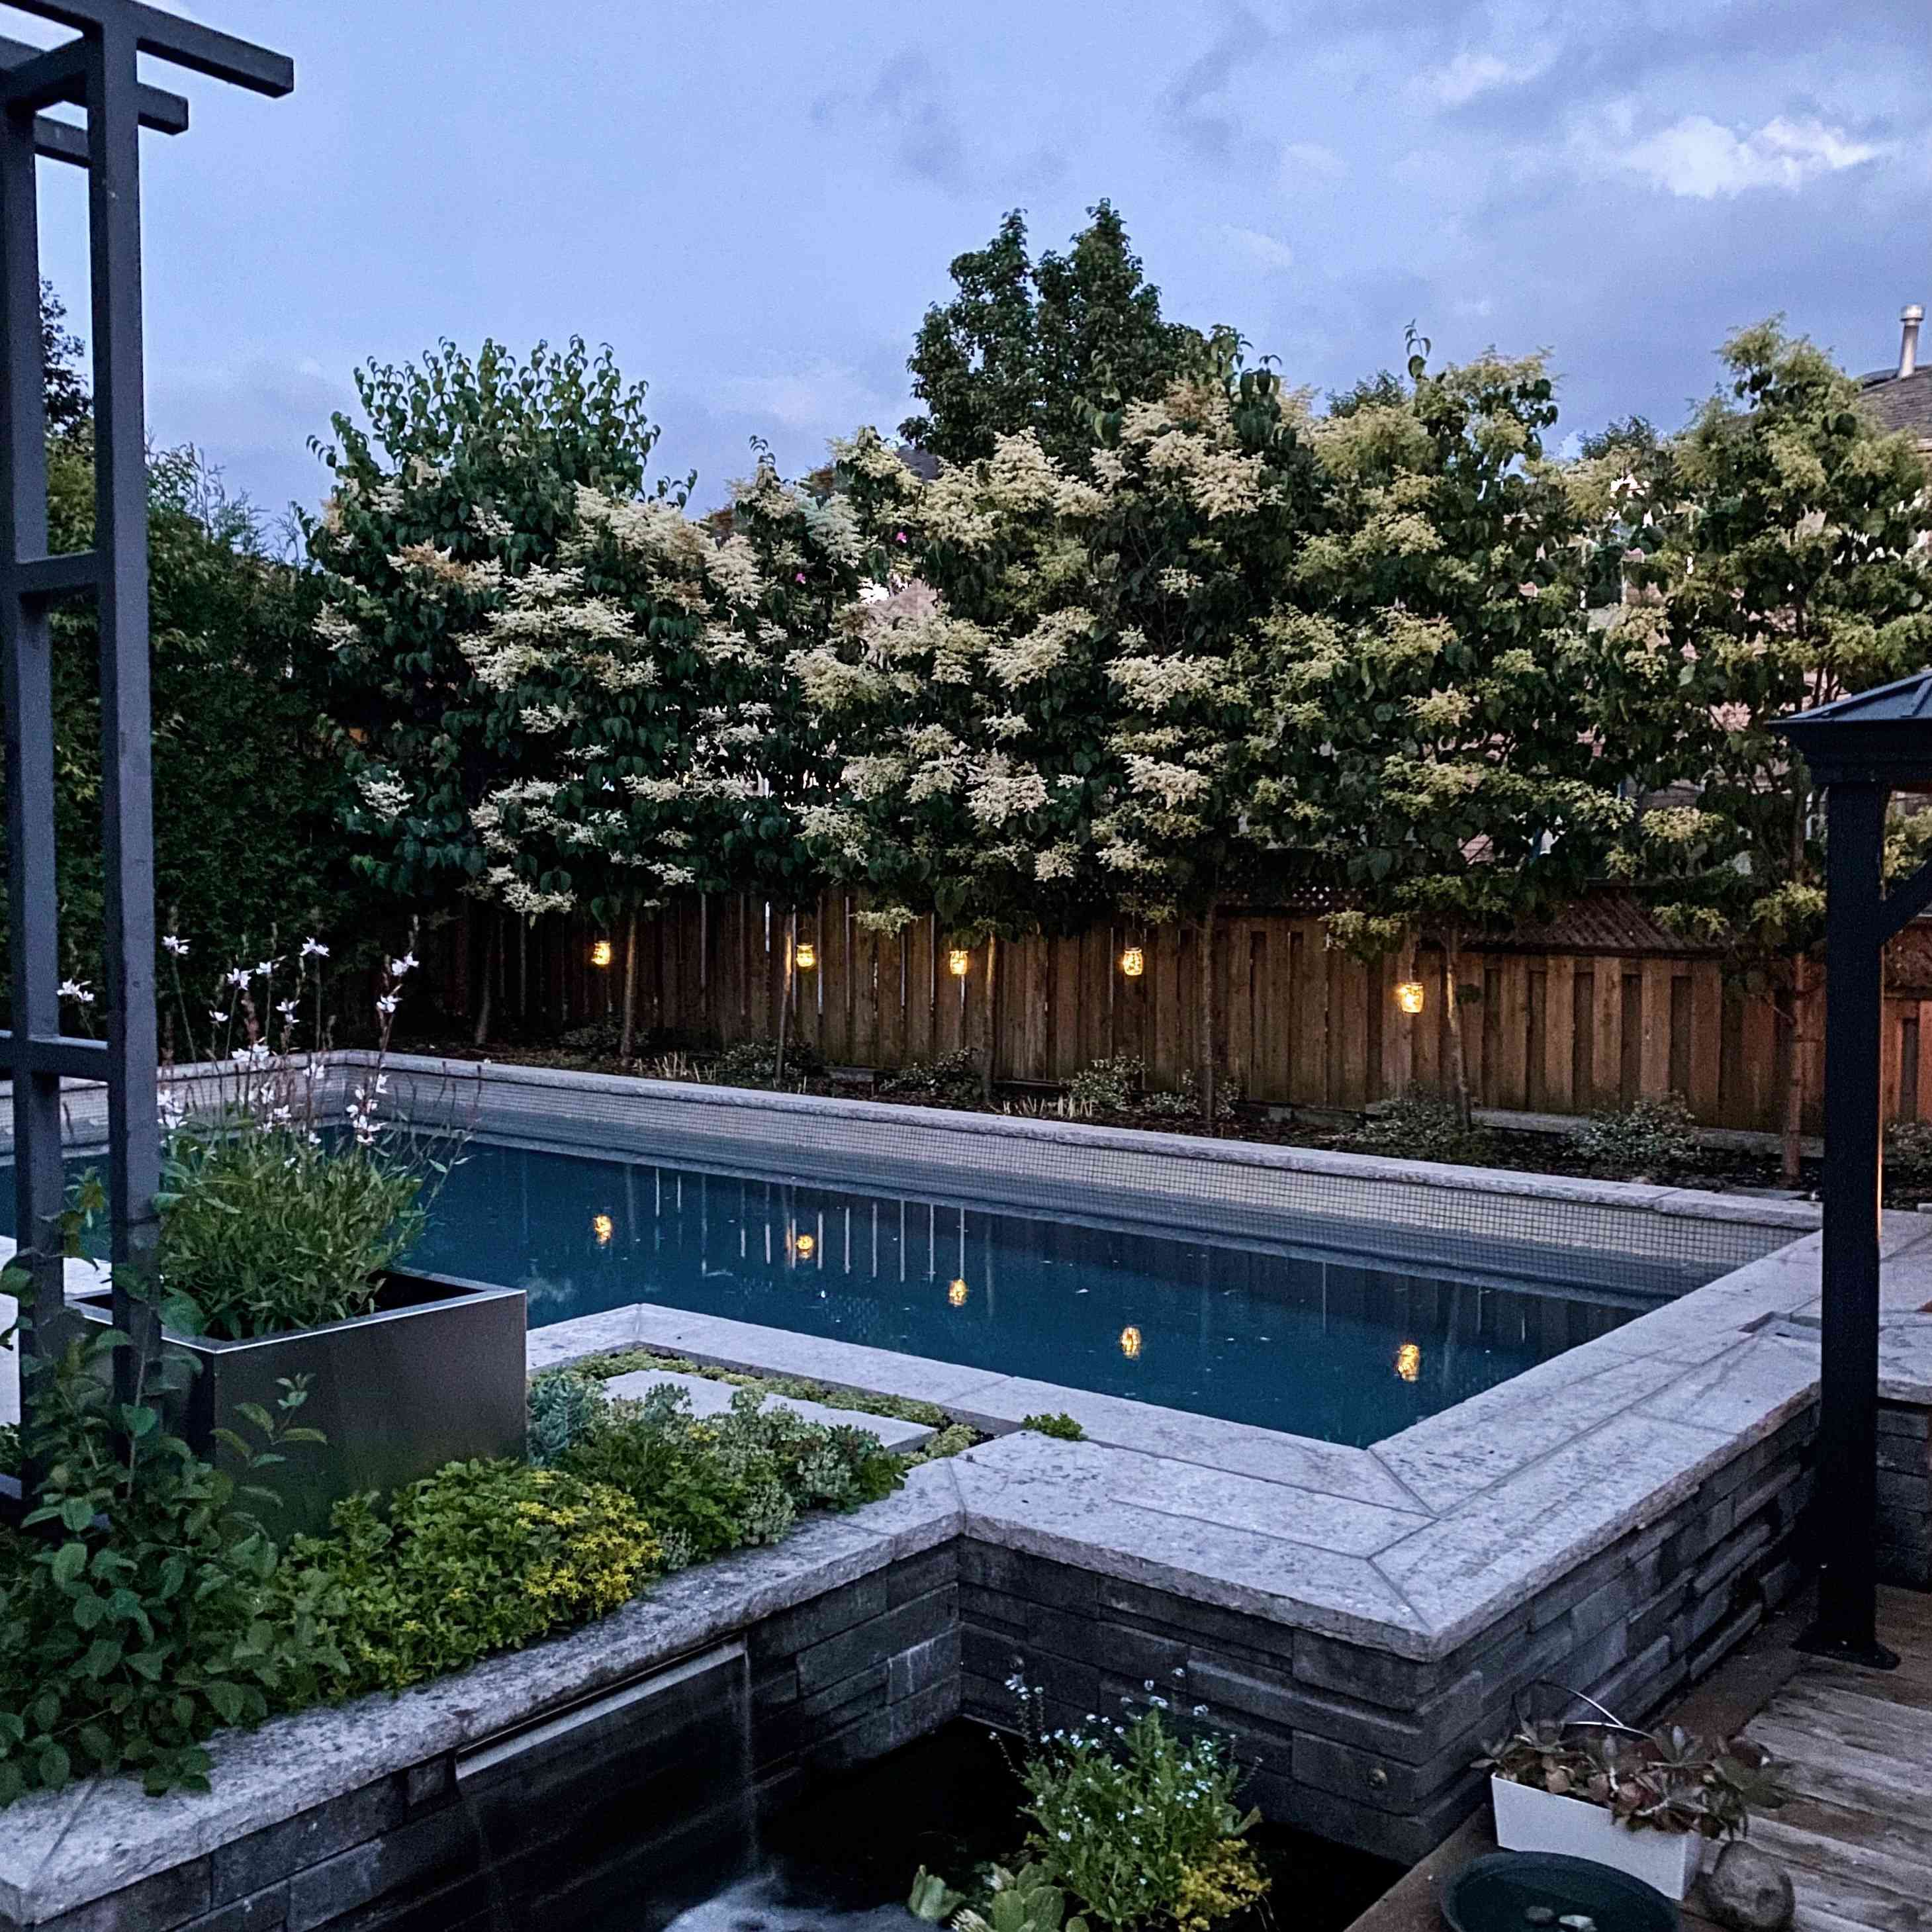 a pool is surrounded by lush greenery and a blooming tree behind the fence